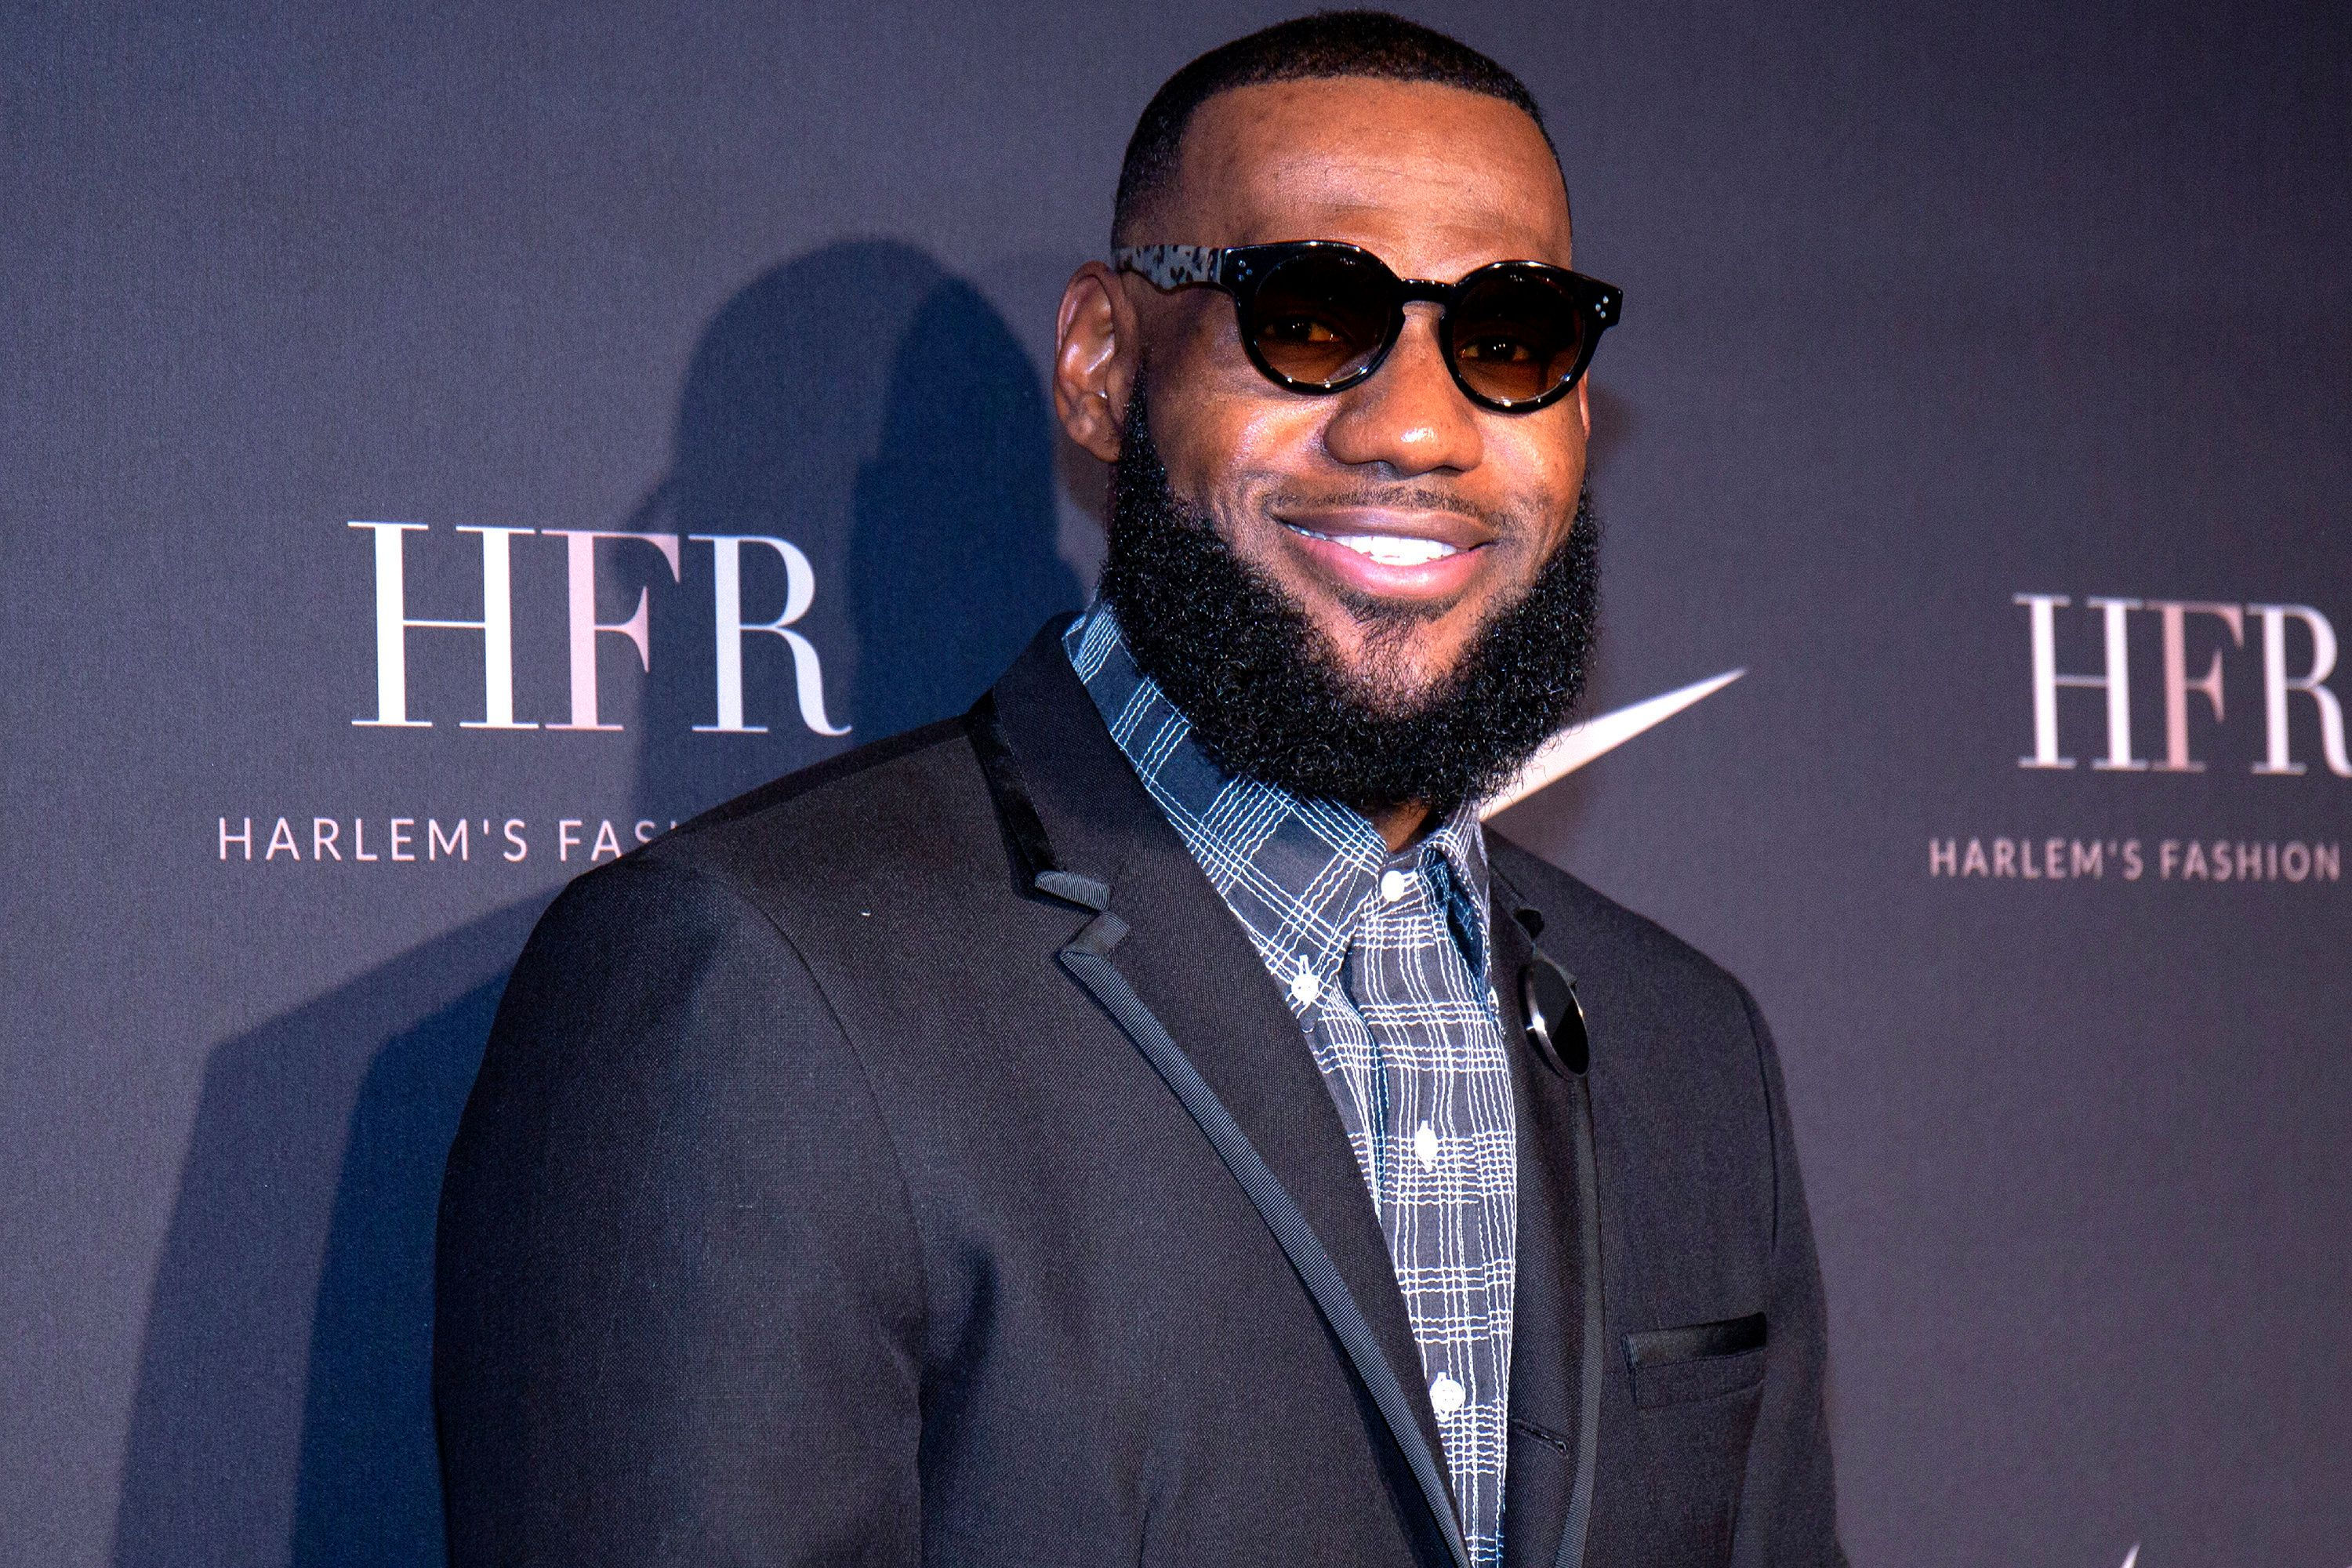 NEW YORK, NY - SEPTEMBER 04:  Lebron James attends Harlem's Fashion Row at Capitale on September 4, 2018 in New York City.  (Photo by Santiago Felipe/WireImage)